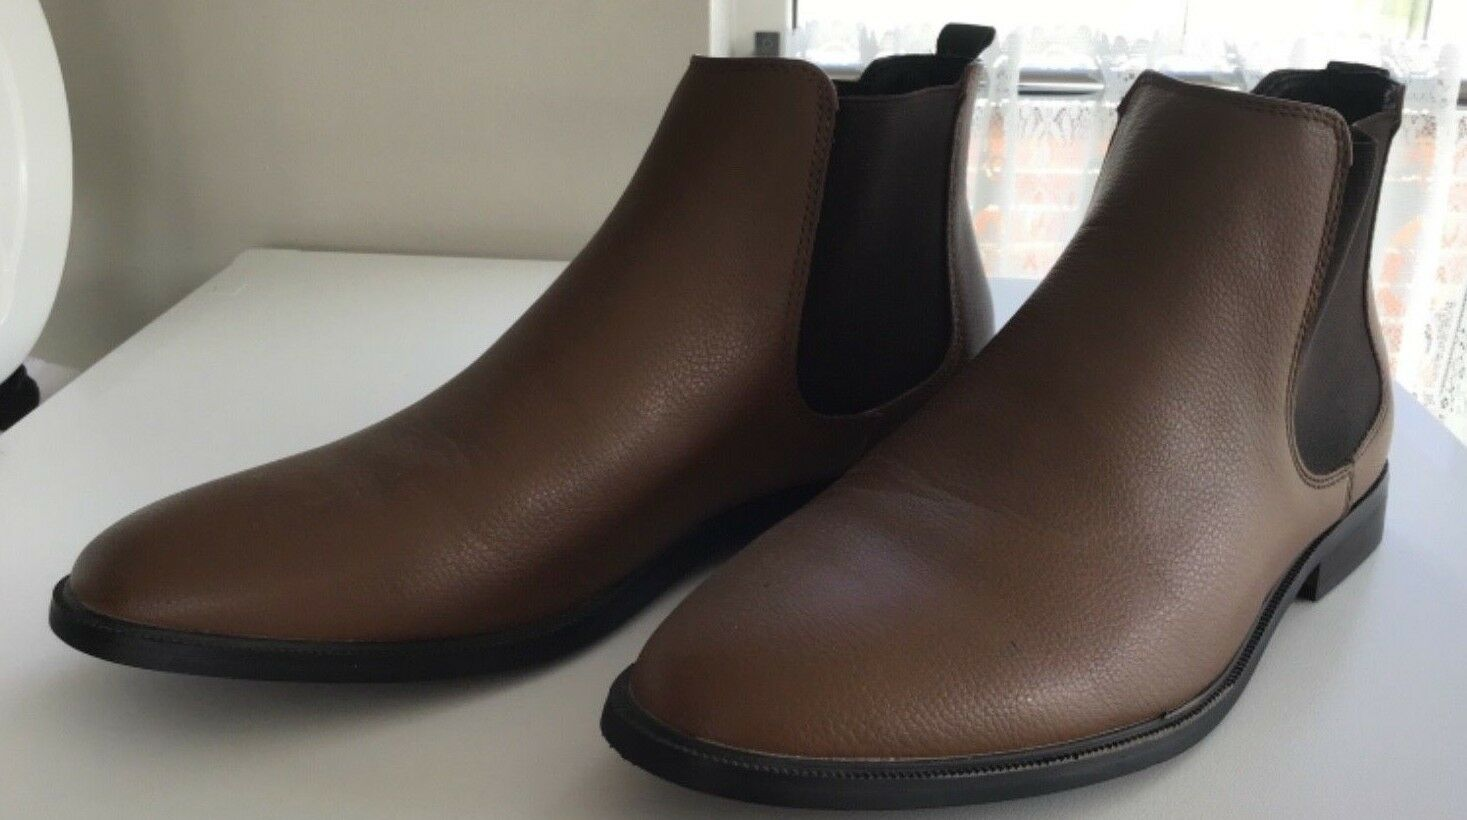 Men's New Look Brown Chelsea Boots Size 10 Only Worn Once